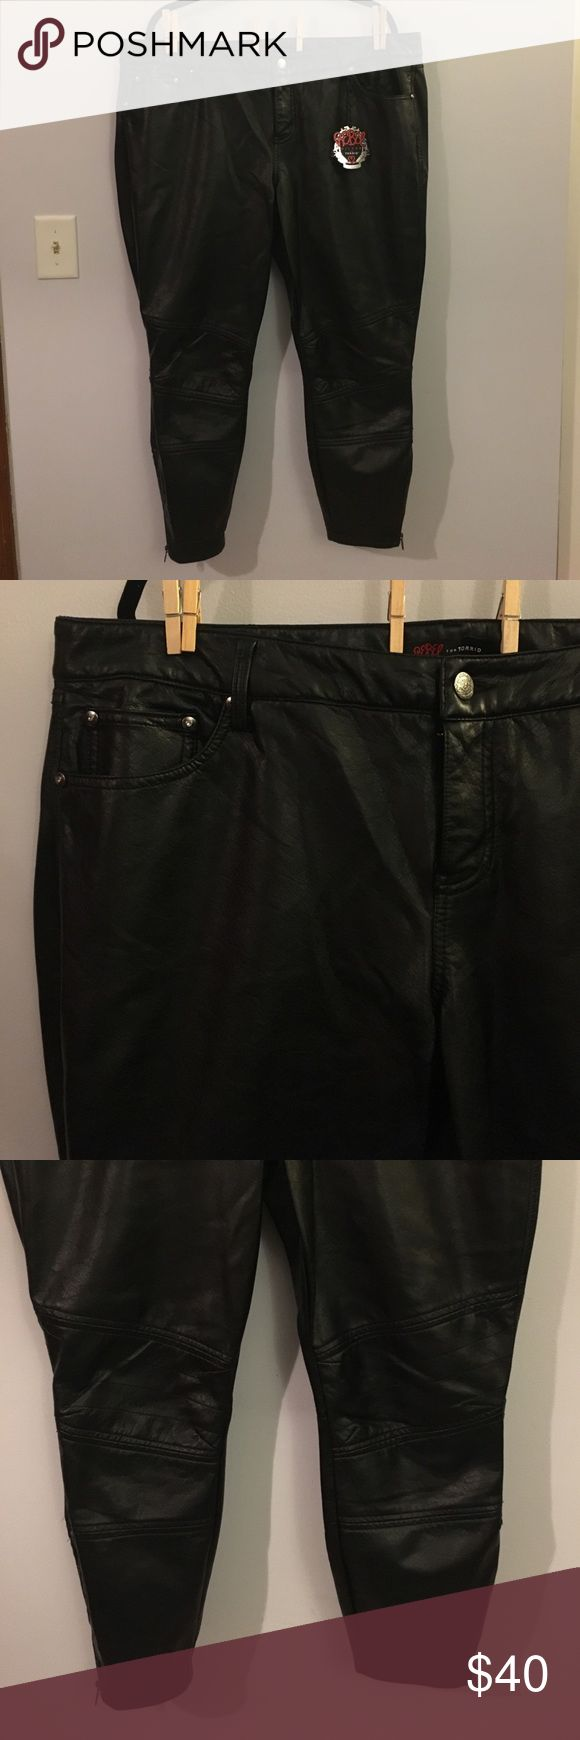 "Rebel Wilson for Torrid Black Faux Leather Pants Up for grabs is this pair of pants from Rebel Wilson for Torrid. They are a size 20 and have a 27"" inseam with a 42.5"" waist and 51"" hips. These pants are skinny pants style in black faux leather. They feature moto style patches, rhinestone accents and zip ankles. These skinnies are new with the original tags. torrid Pants Skinny"